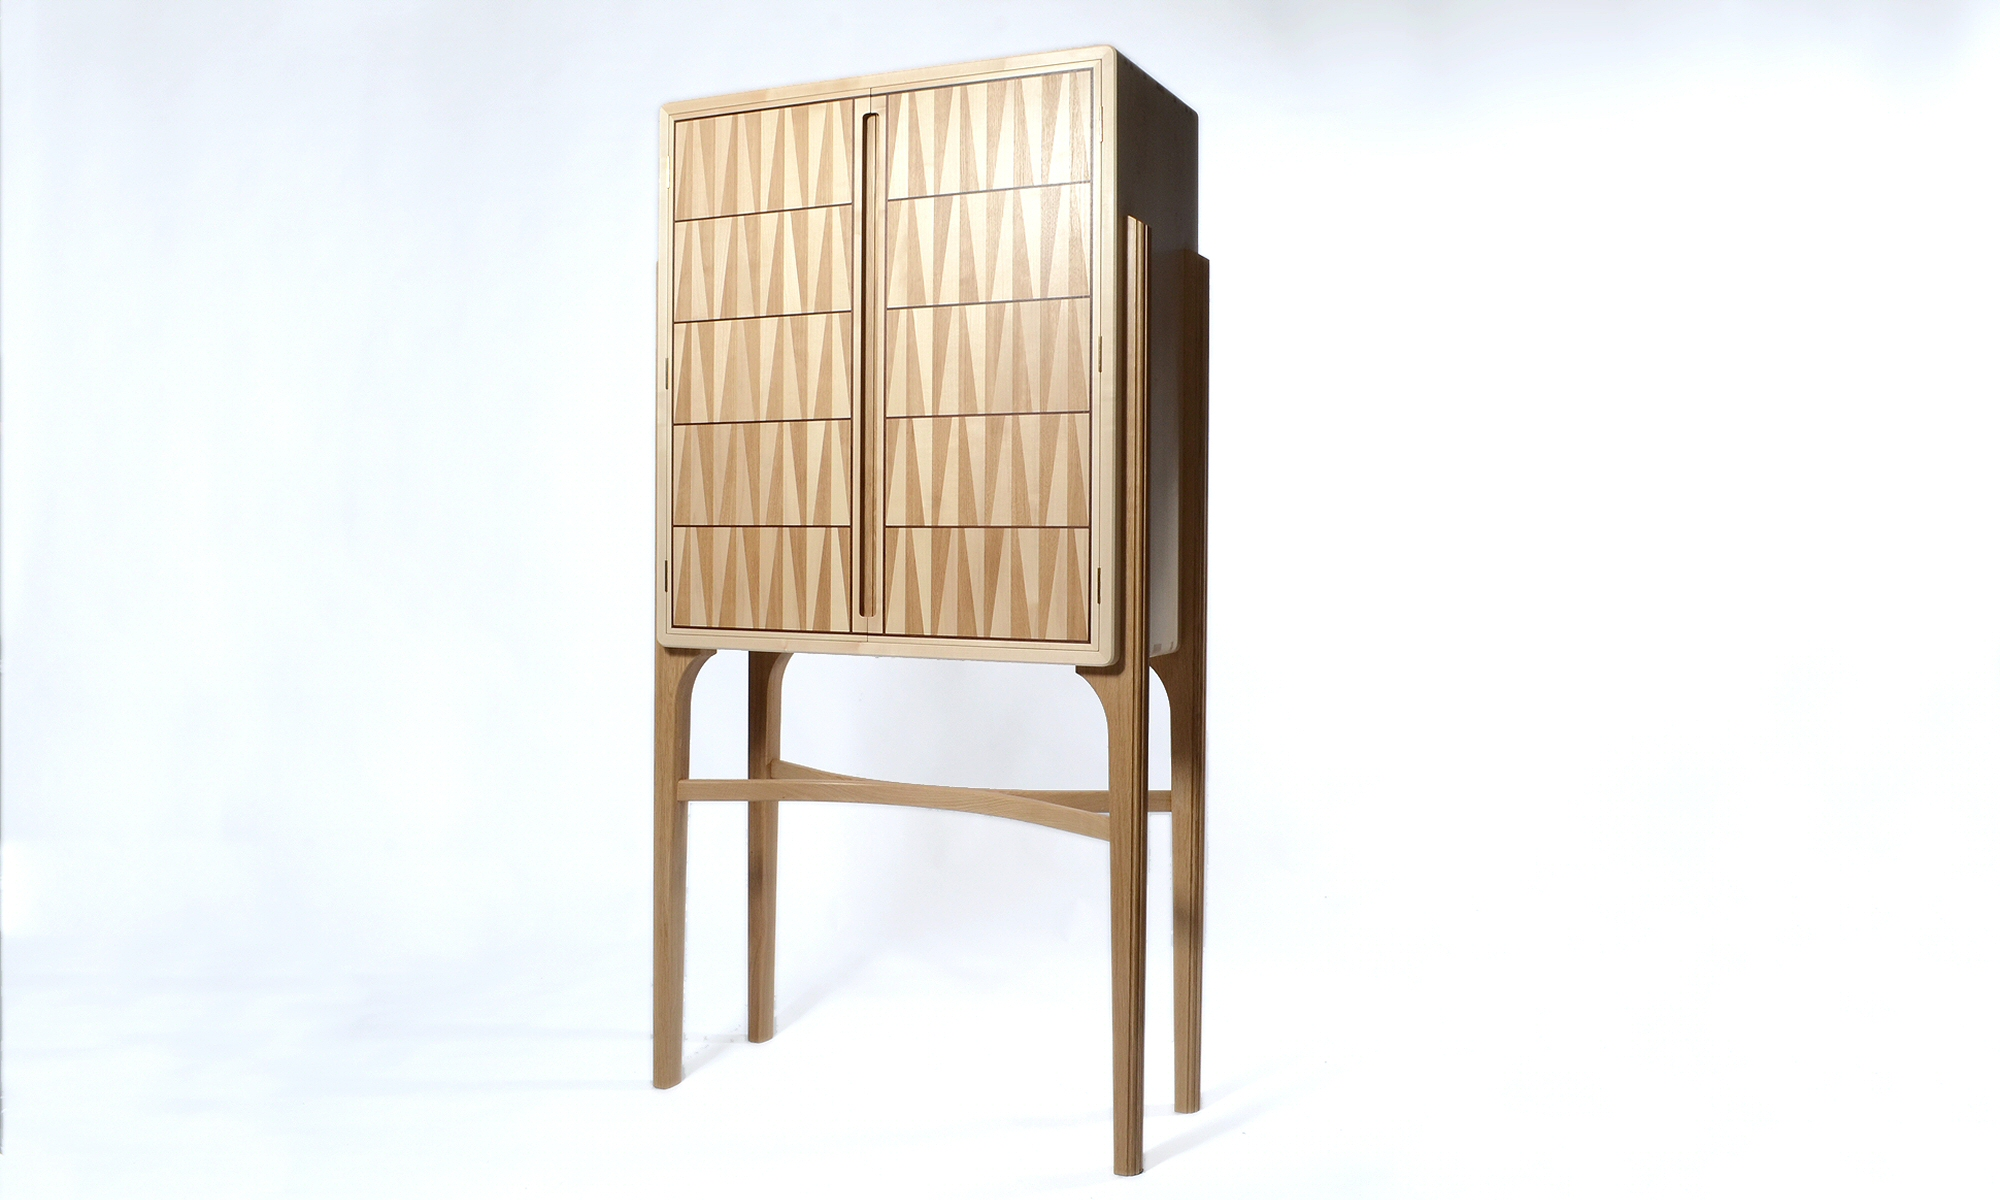 drinks cabinet image from gallery - bespoke furniture handcrafted by Richard Frost Design